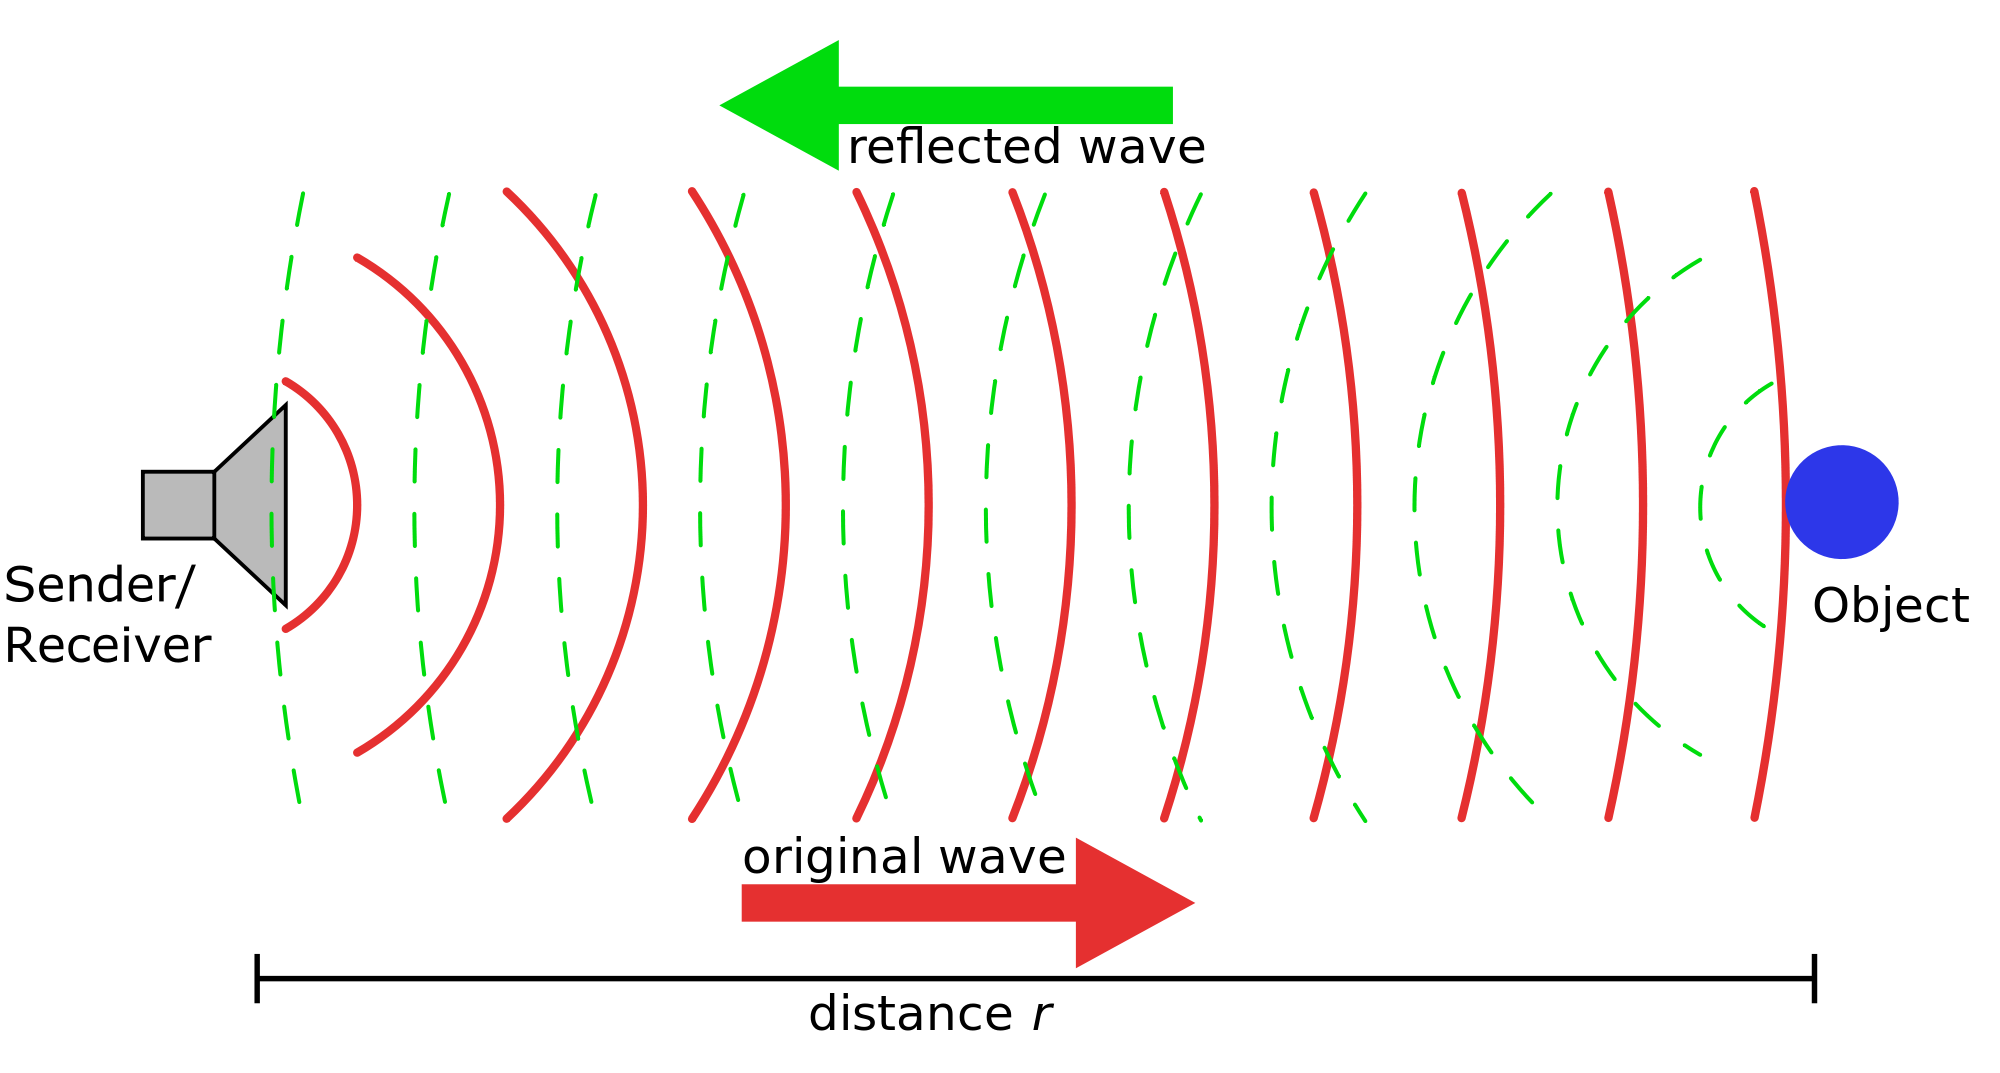 Working Principle of SONAR